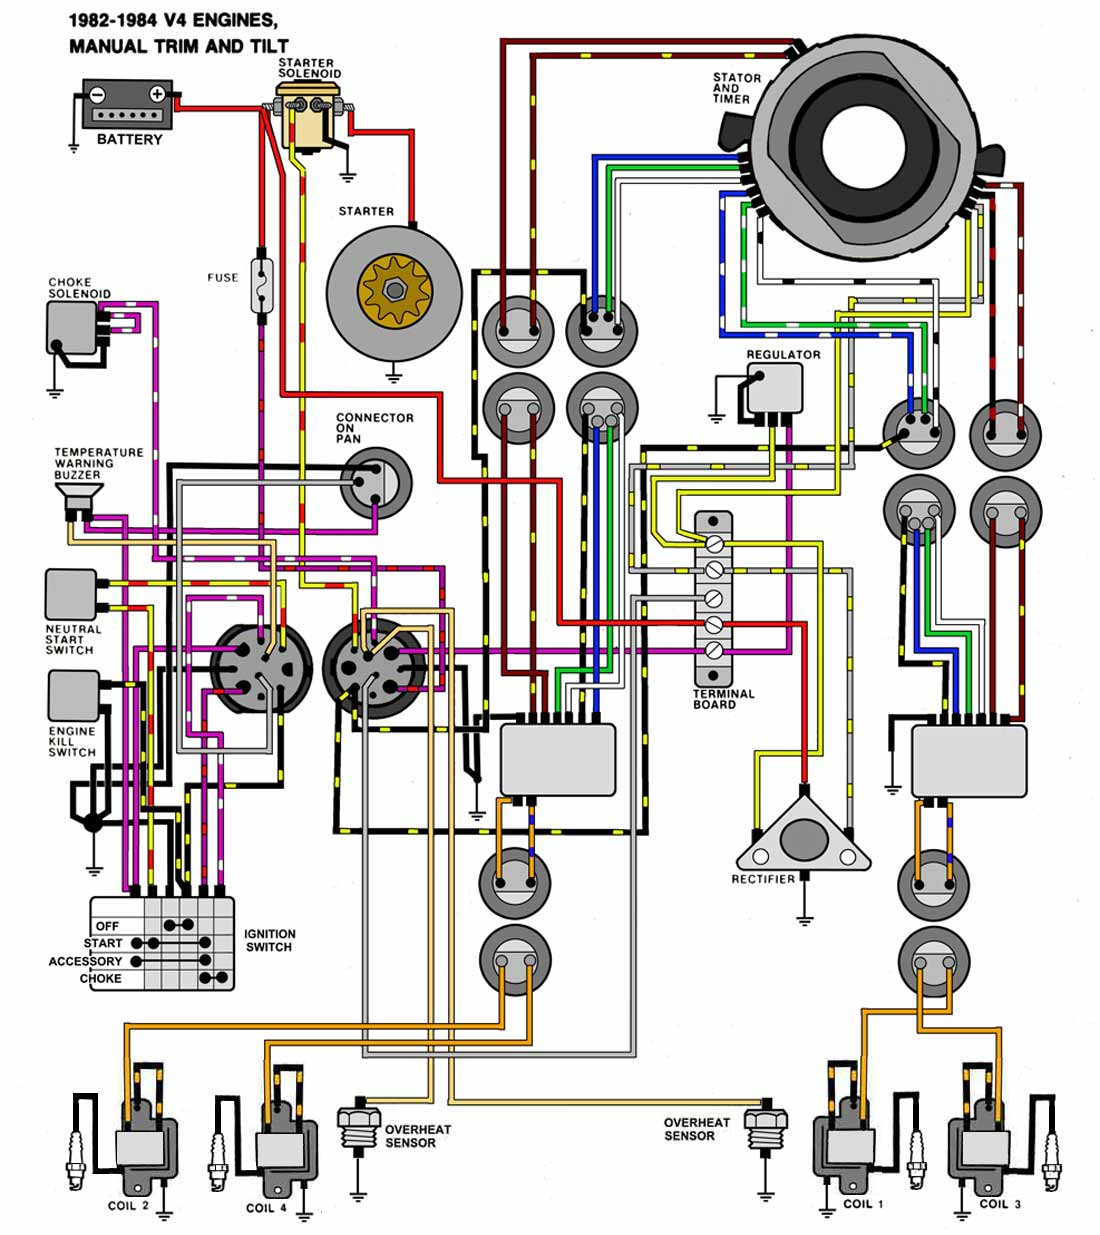 82_84_V4_NOTNT mastertech marine evinrude johnson outboard wiring diagrams OMC Inboard Outboard Wiring Diagrams at edmiracle.co